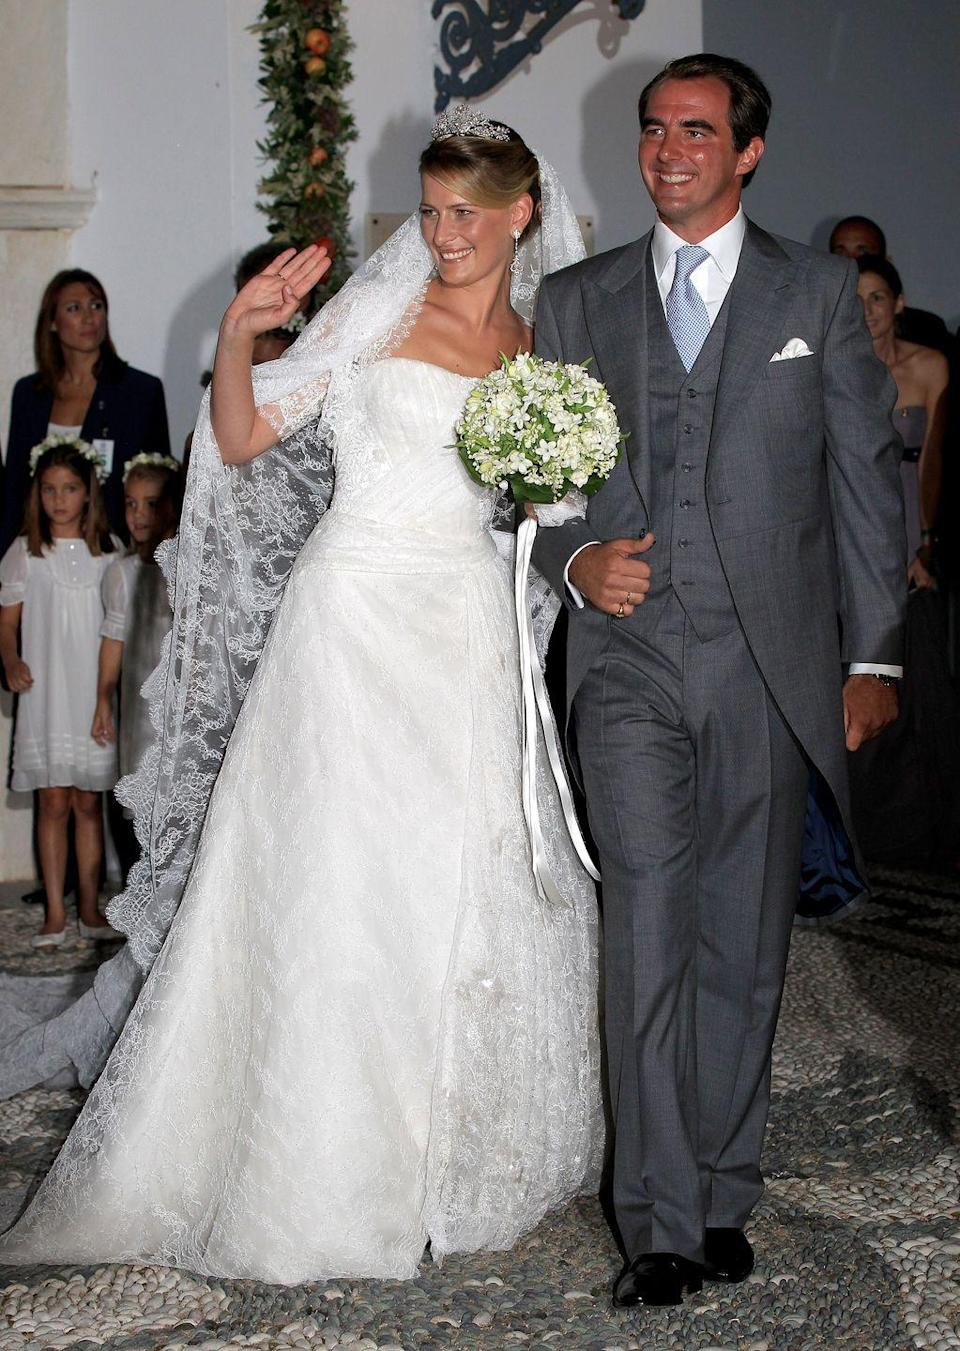 <p>Former event planner, Tatiana Blatnik, married Prince Nikolaos of Greece and Denmark in a Chantilly lace and tulle gown by designer Ángel Sánchez. </p>